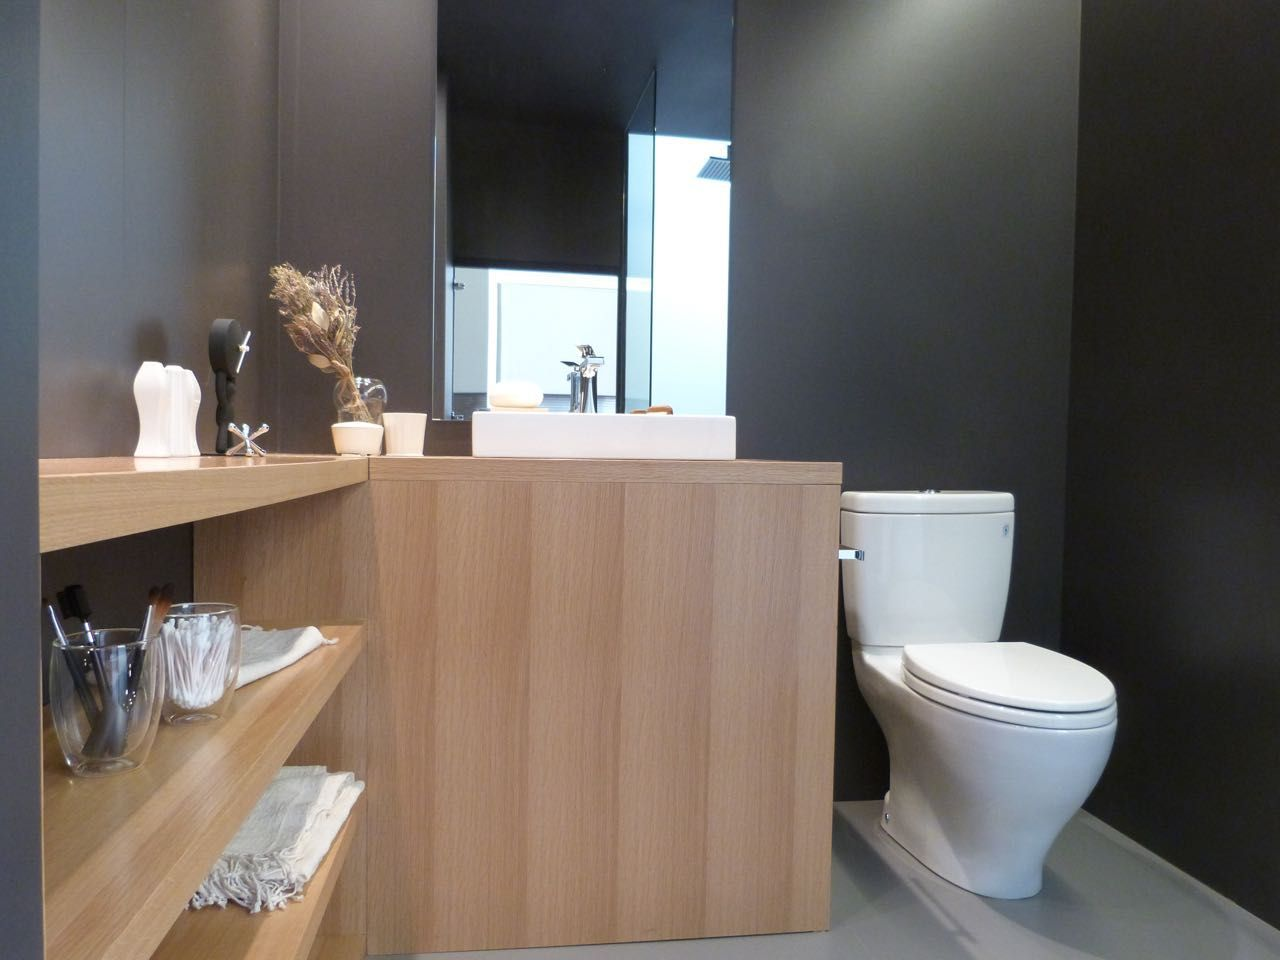 Bathroom with a toilet, a pale wood counter, and shelving visible